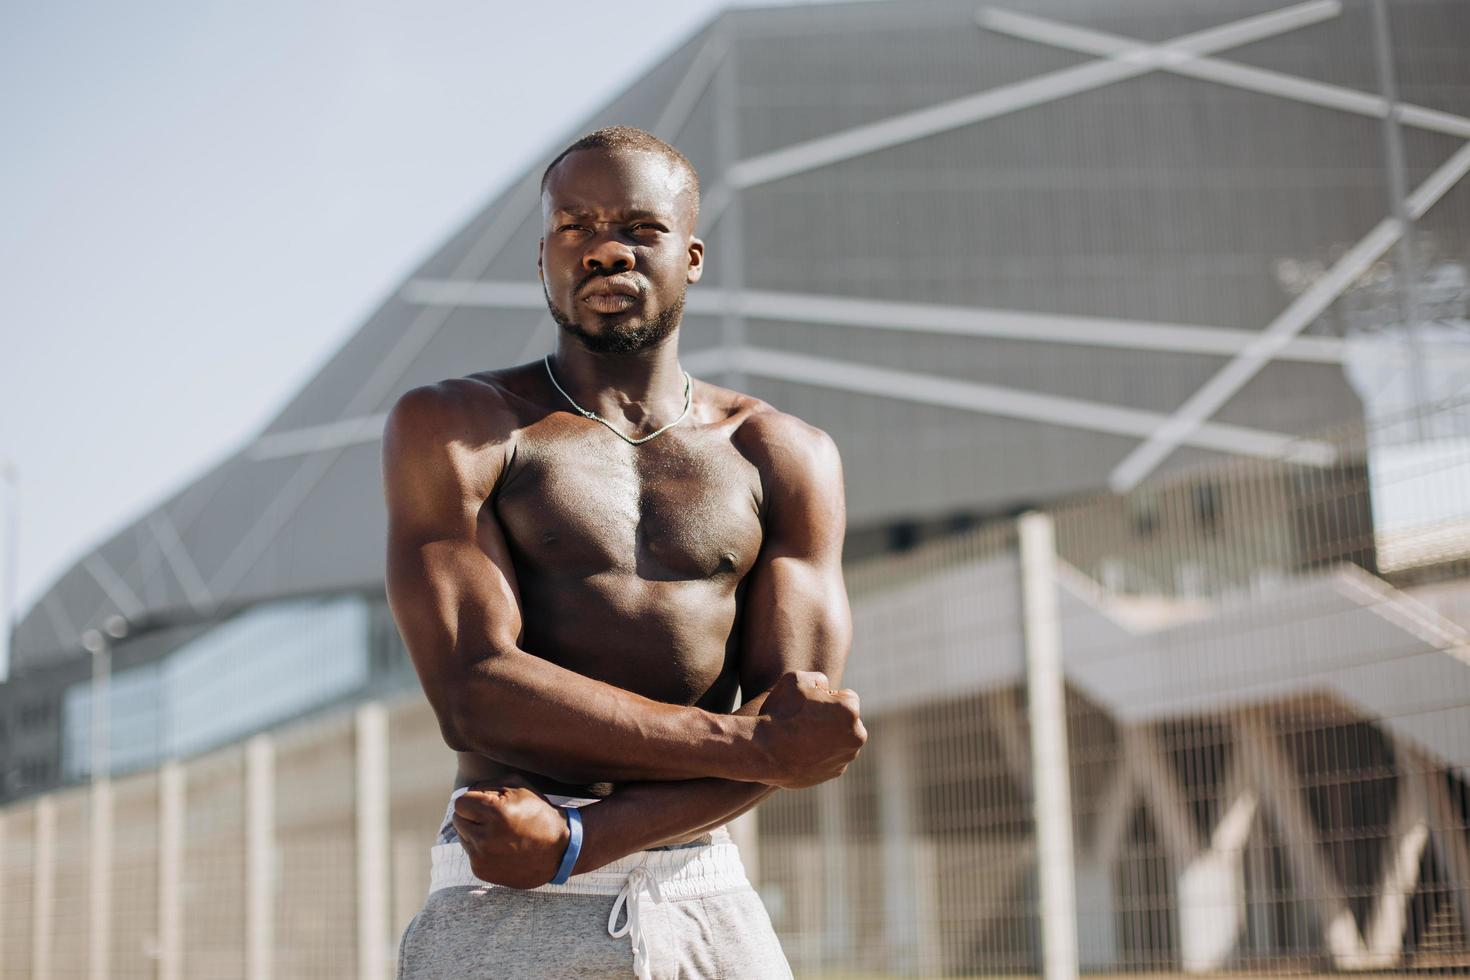 Man with muscles posing after a workout photo